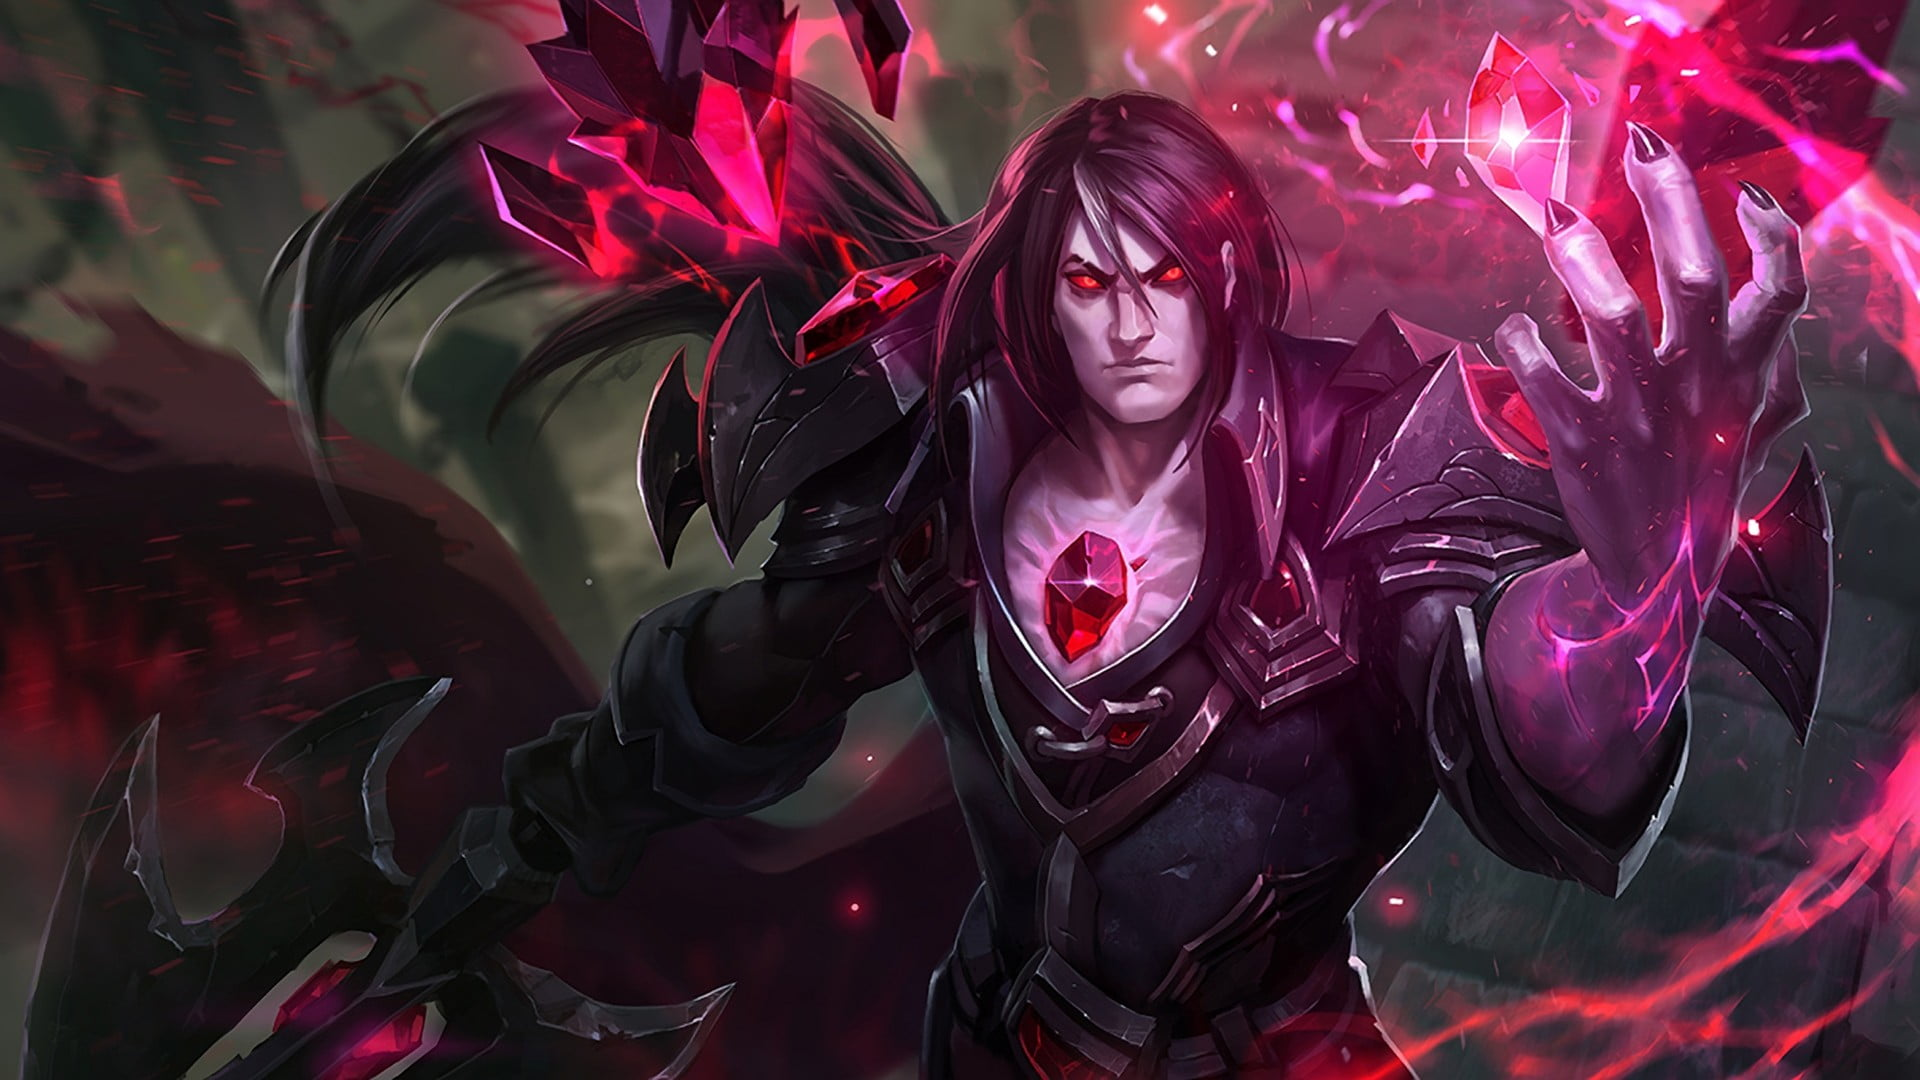 Vladimir LOL fan art League of Legends Taric HD wallpaper 1920x1080